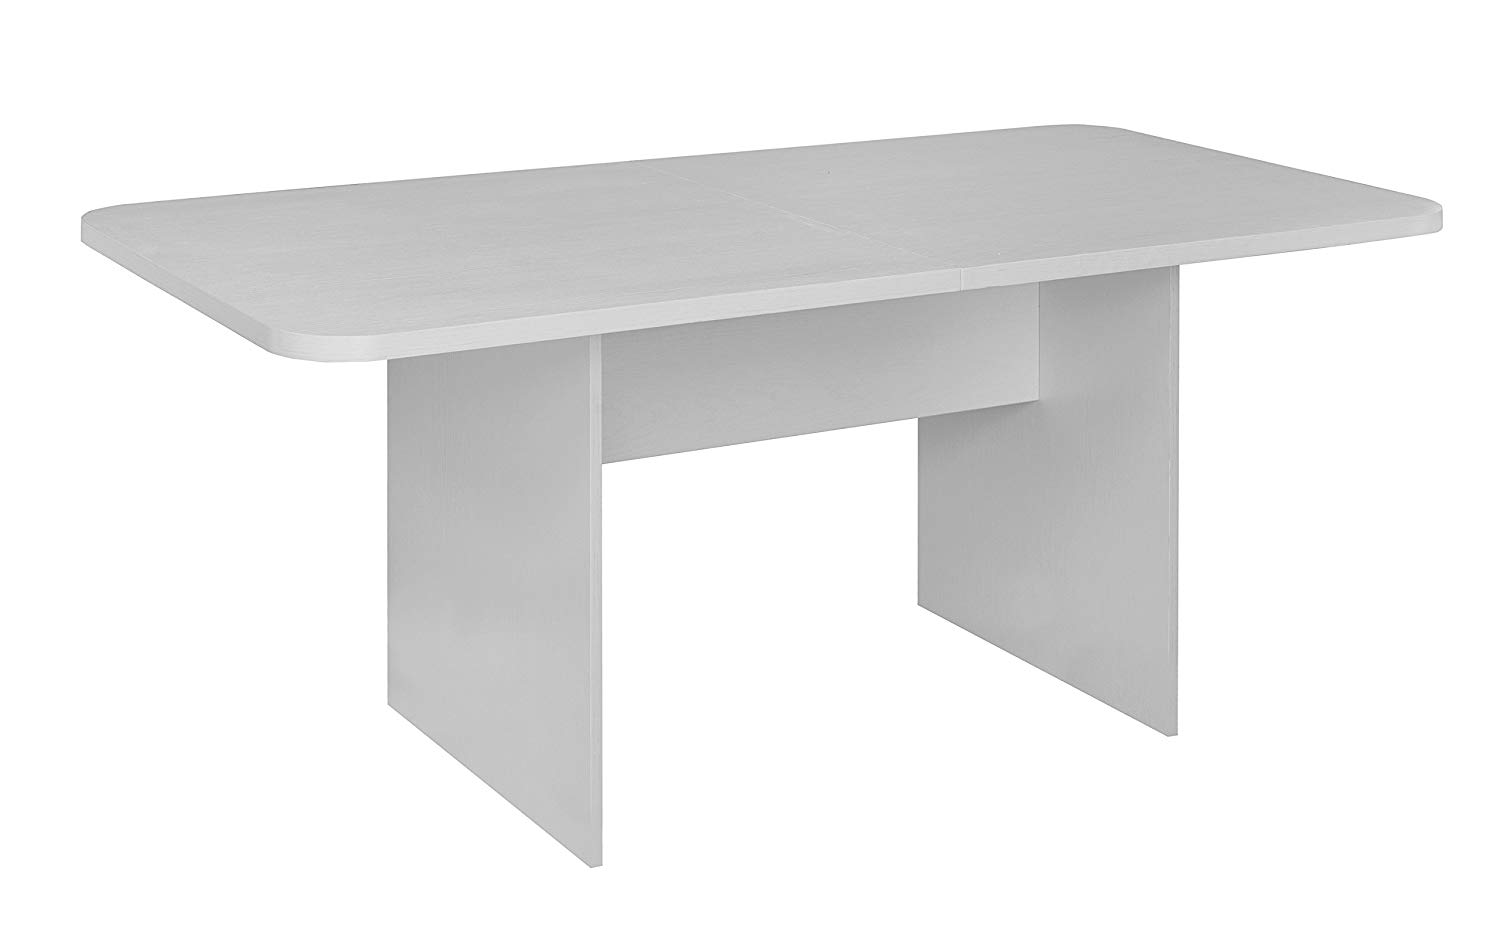 Niche NCT6834WH Mod Conference Table with No-Tools Assembly, 6', White Wood Grain